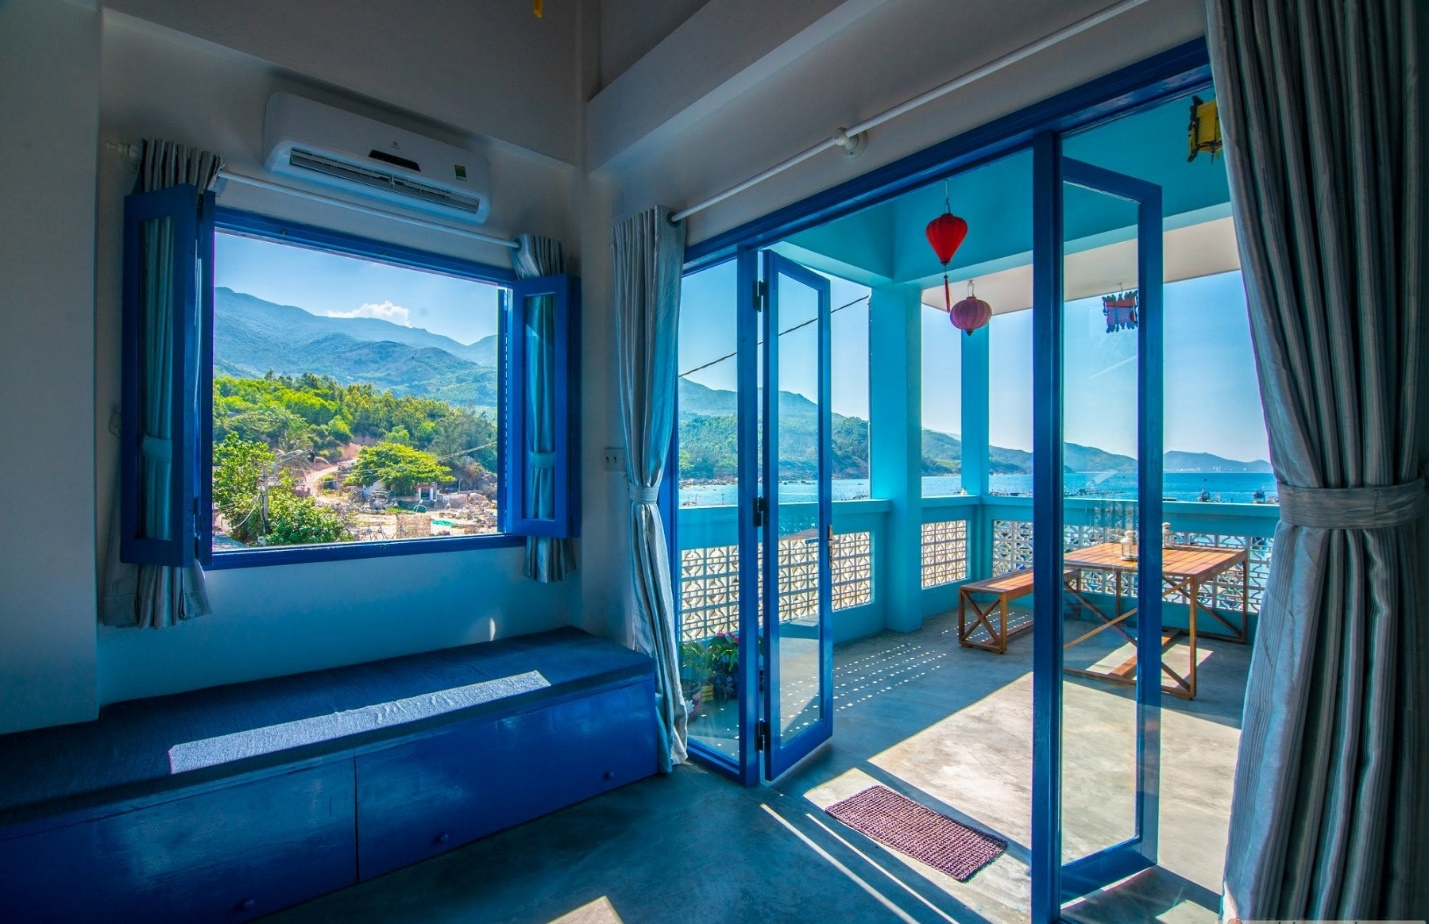 Where to stay in Quy Nhon